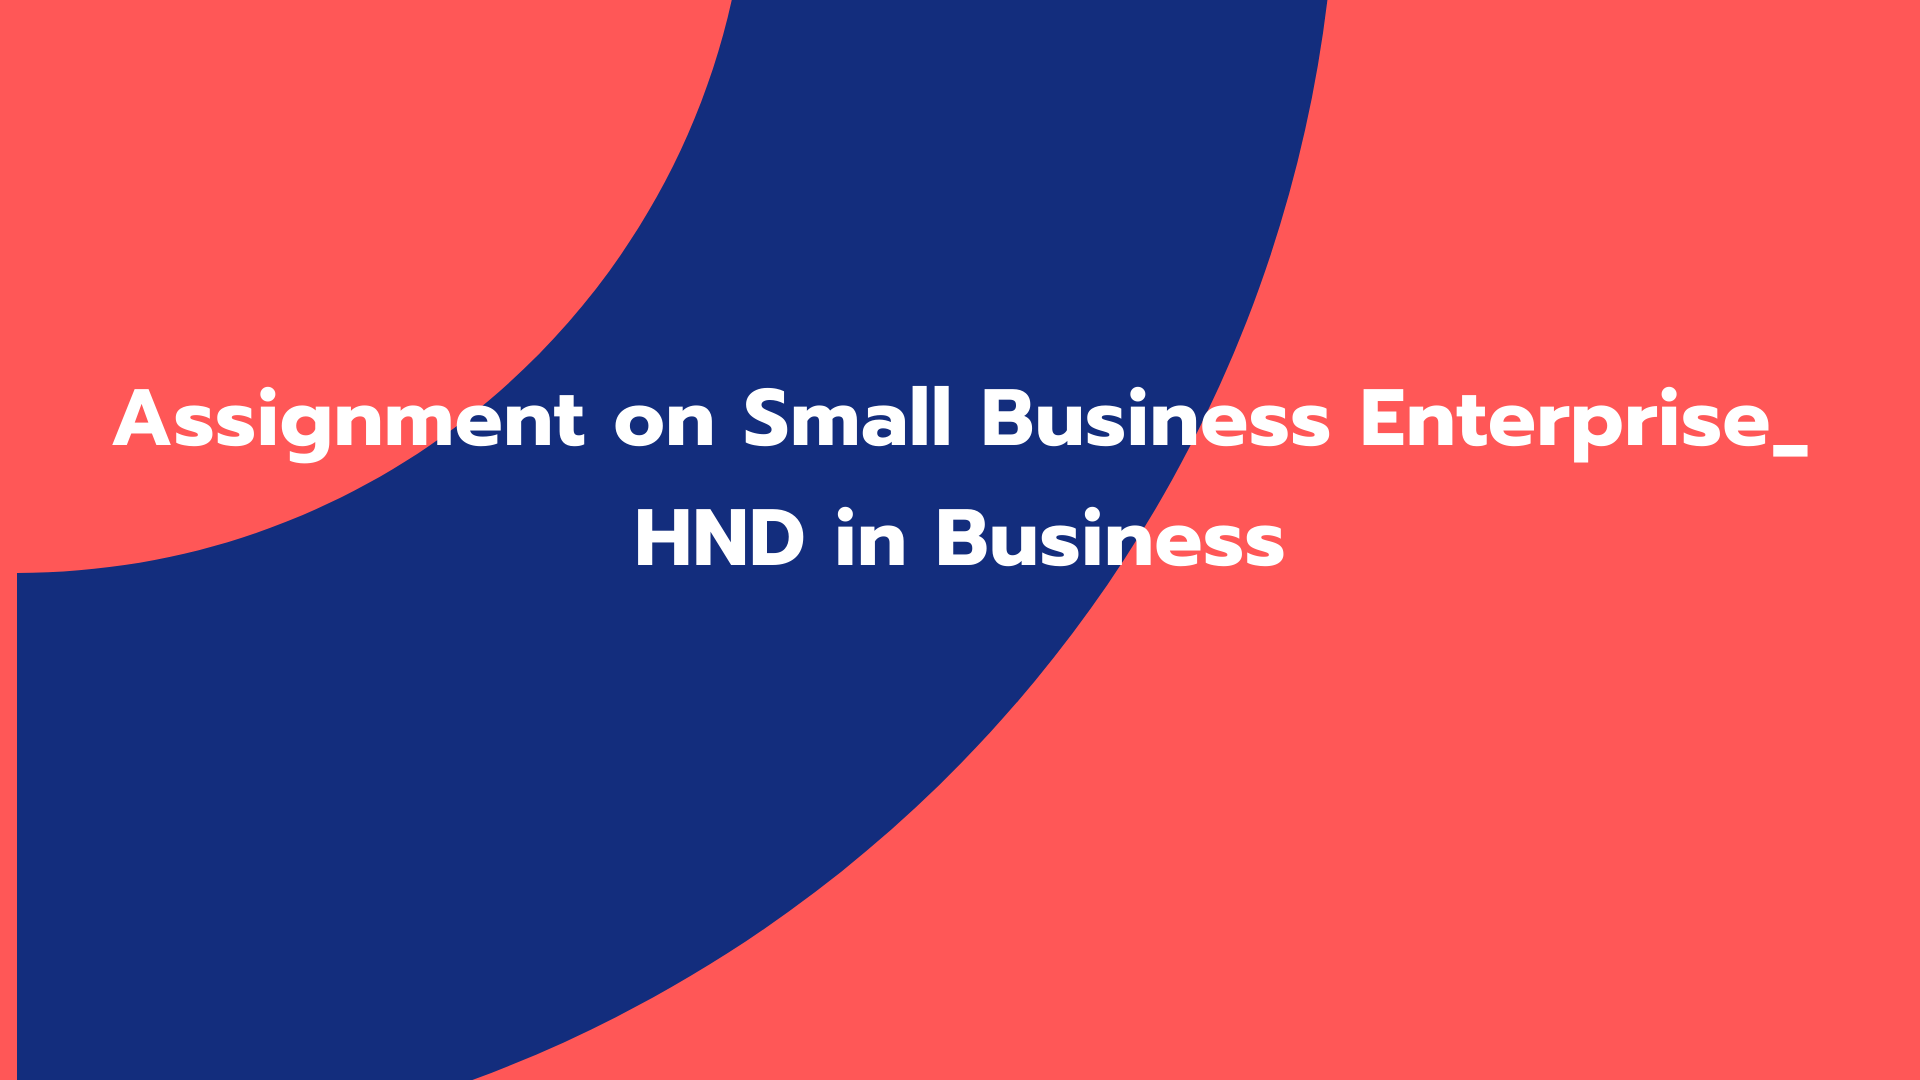 Assignment on Small Business Enterprise_ HND in Business